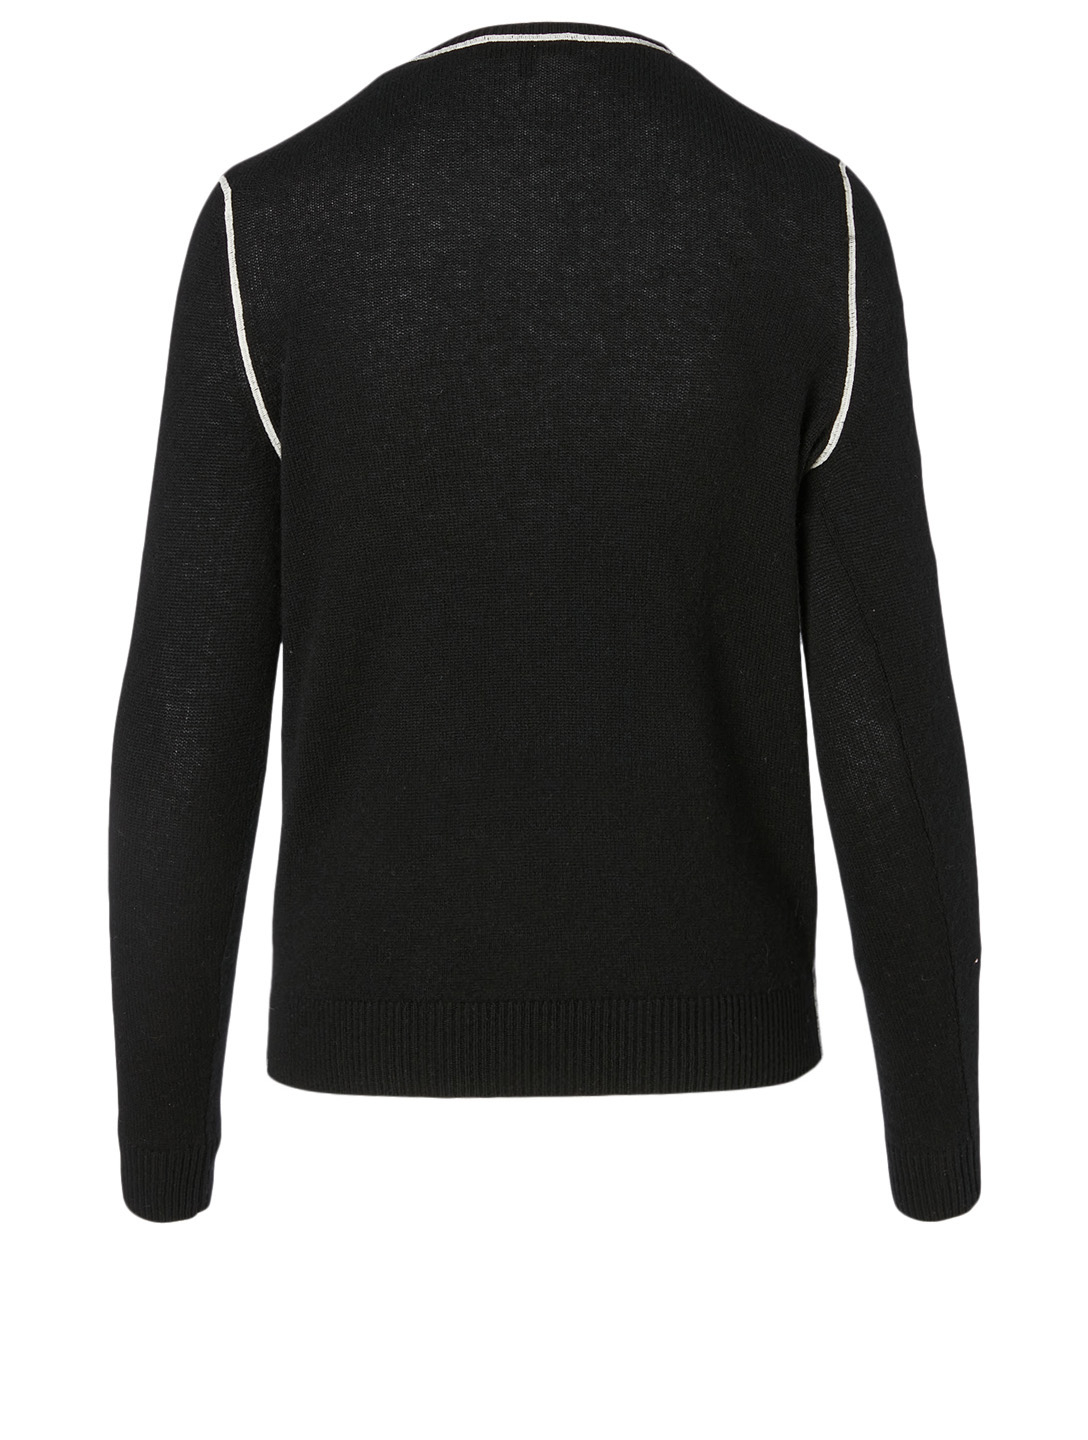 THEORY Cashmere Crewneck Top Women's Black